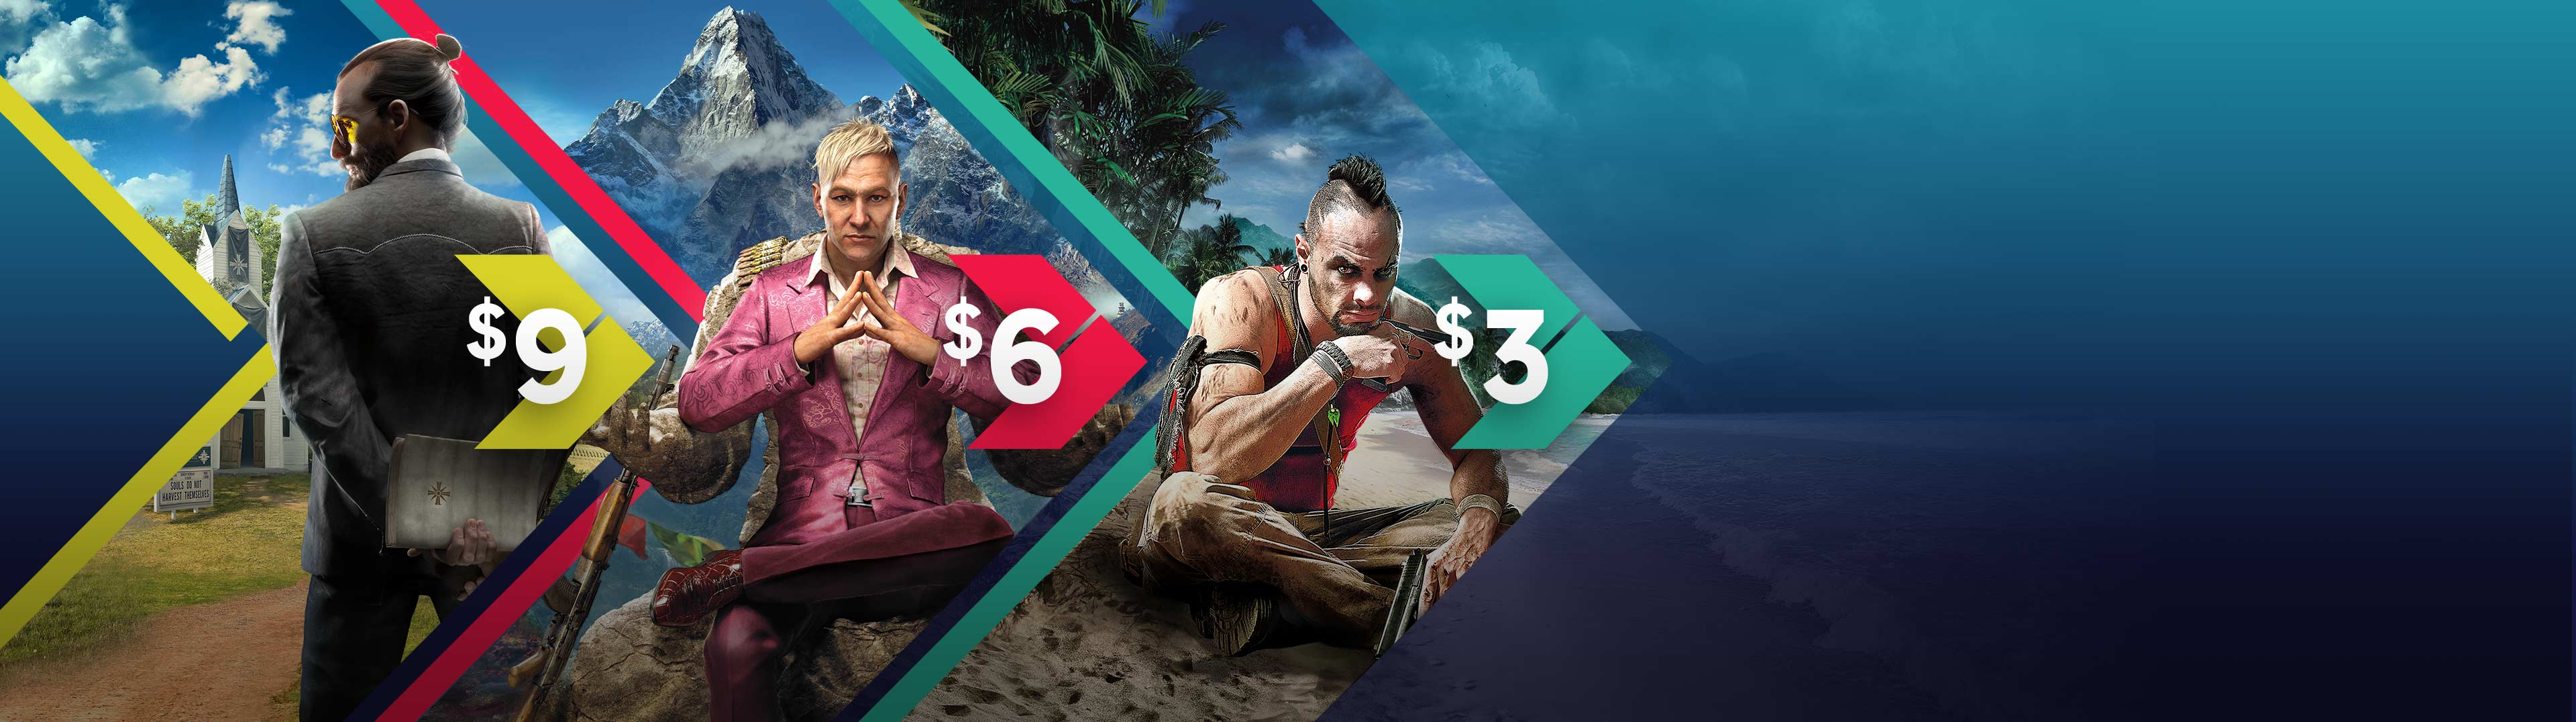 INCREDIBLE DEALS ON ICONIC FAR CRY GAMES